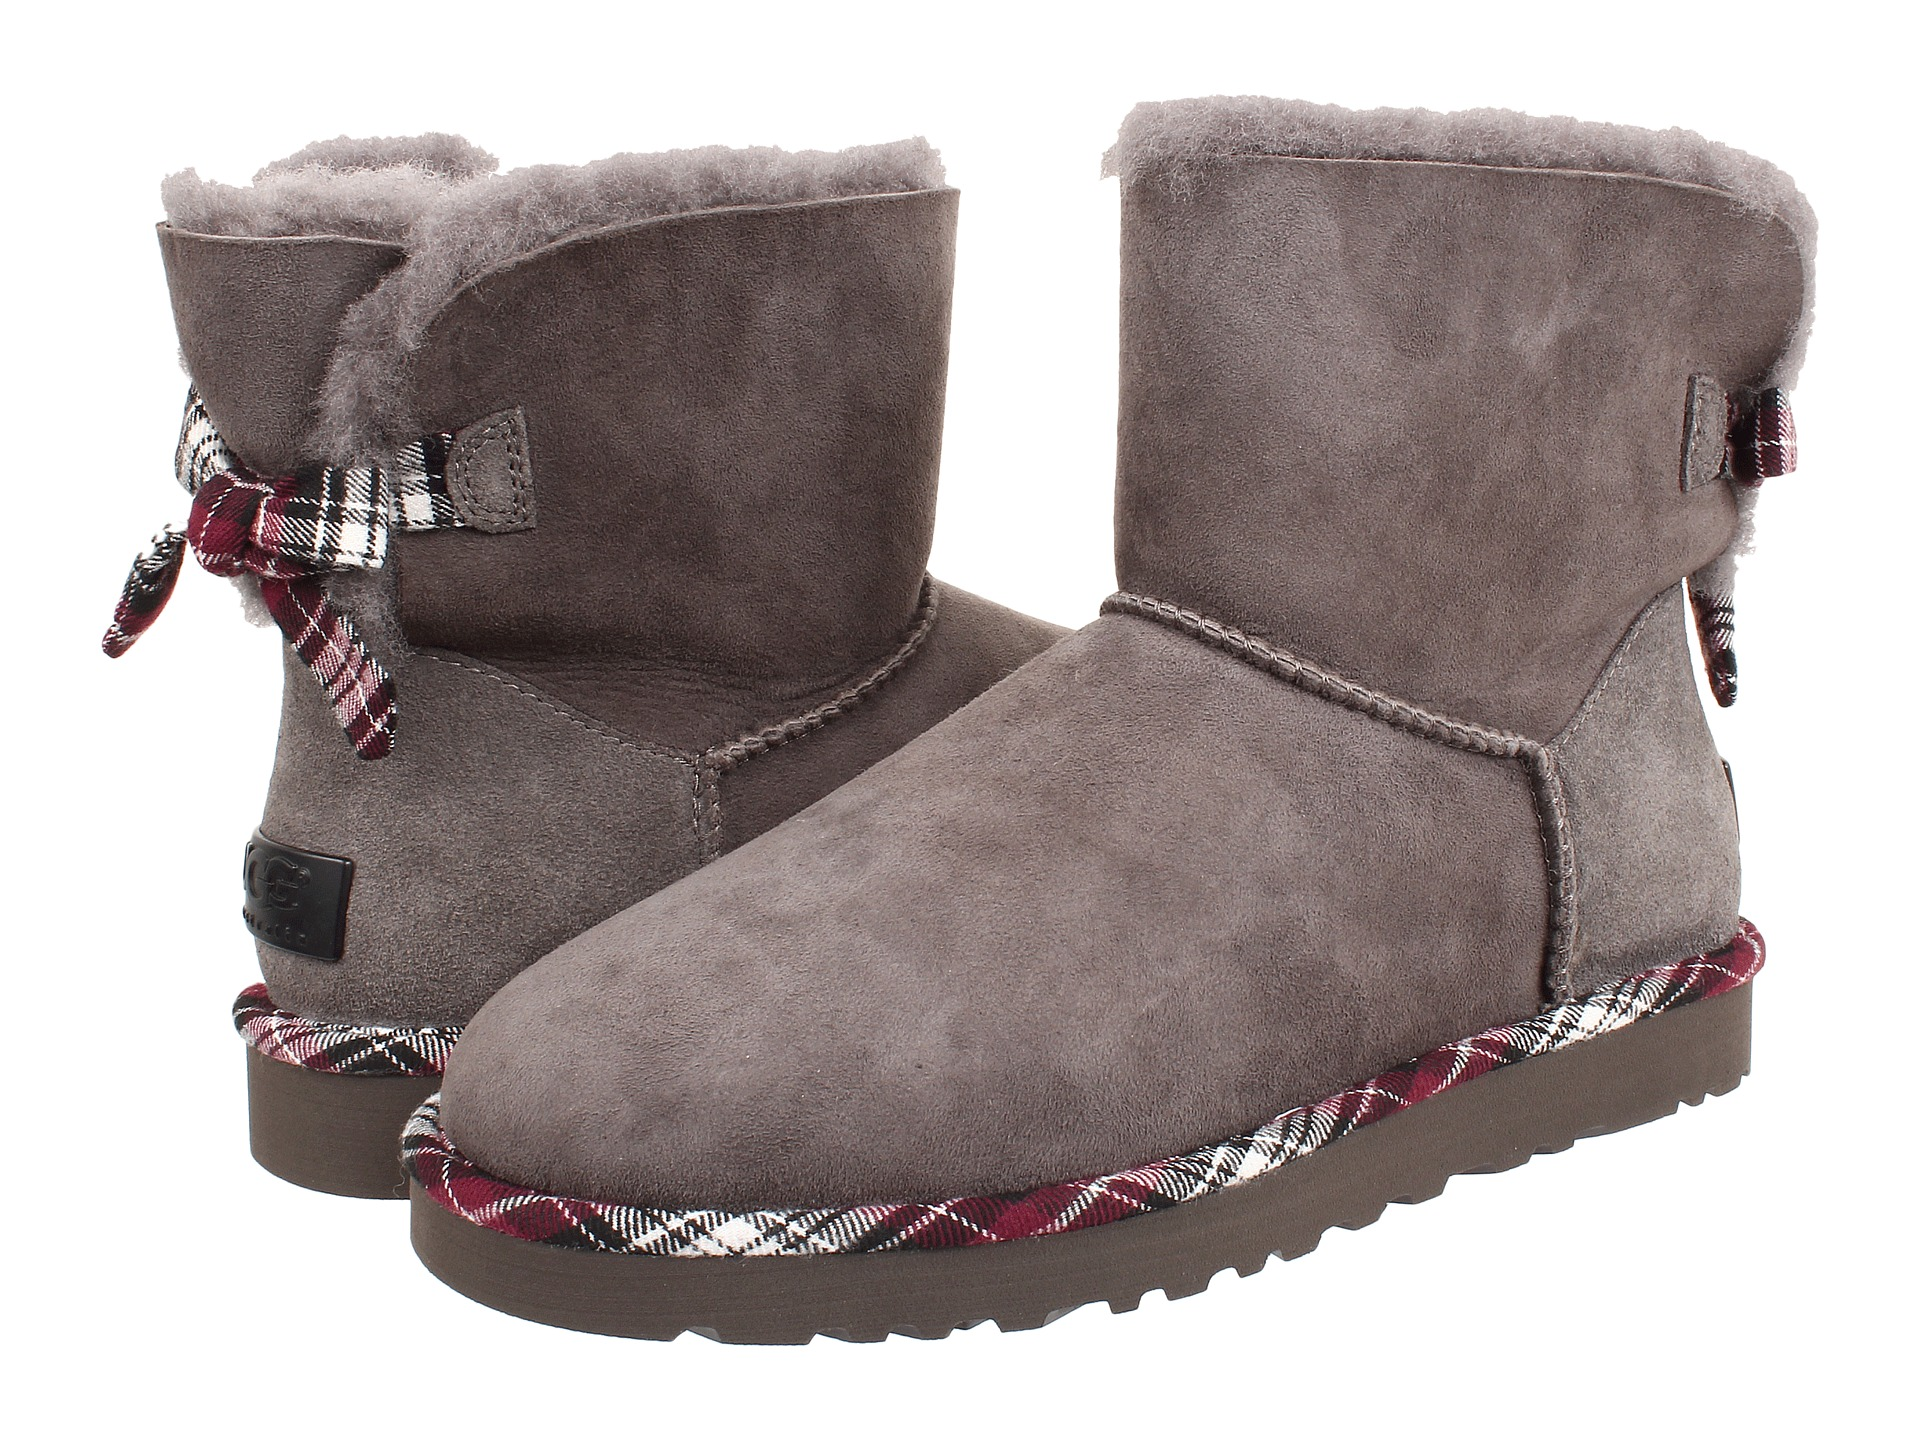 f13954ddfdb Ugg Boots With Plaid On Back - cheap watches mgc-gas.com